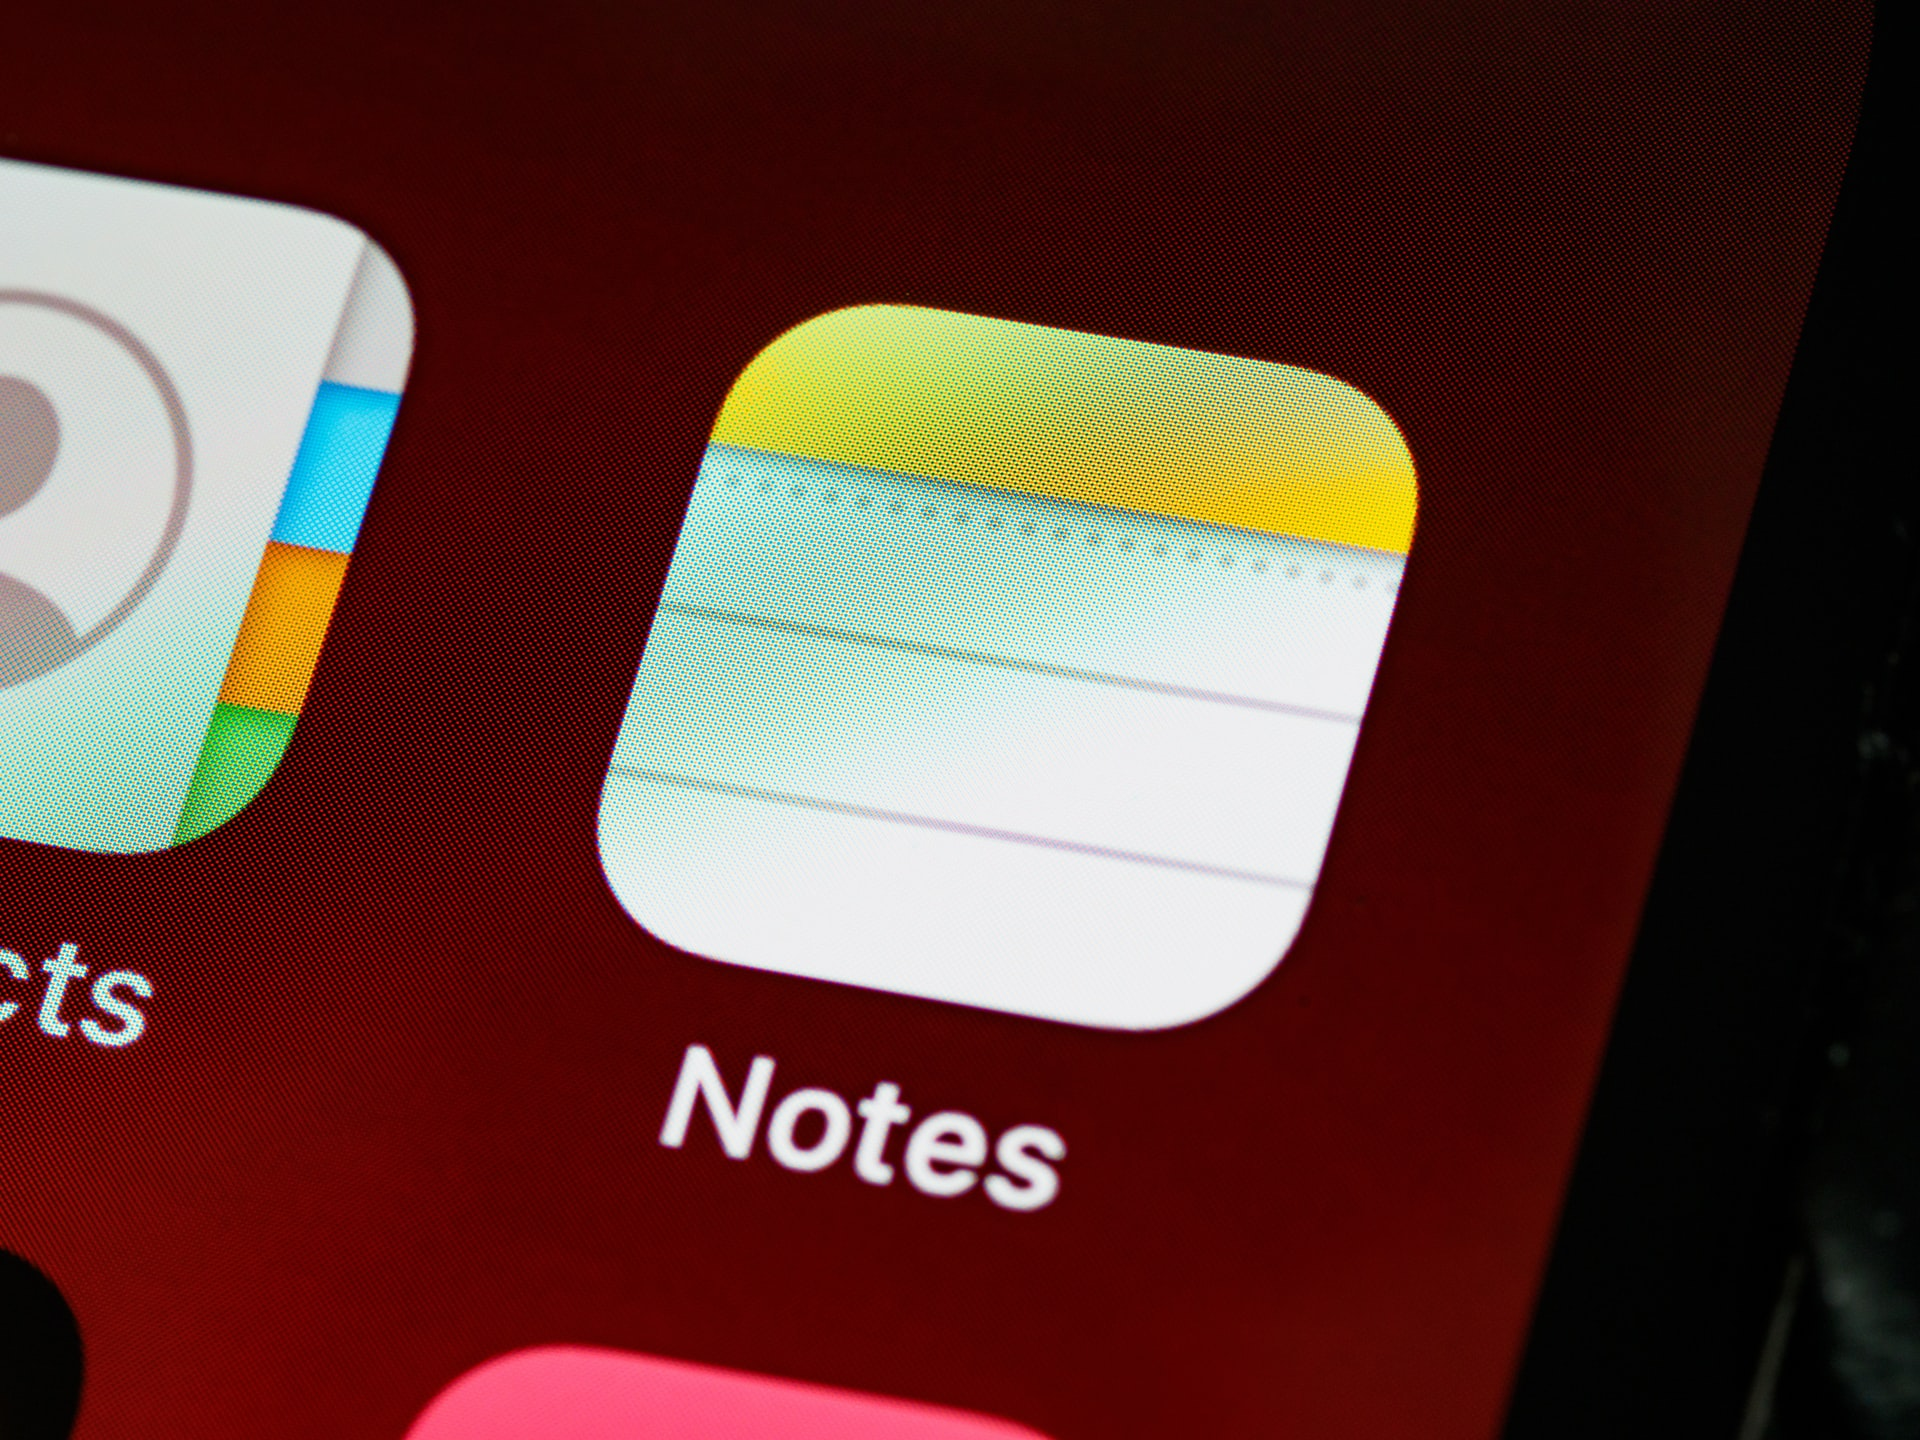 Things You Didn't Realize You Can Do on Apple's Notes App